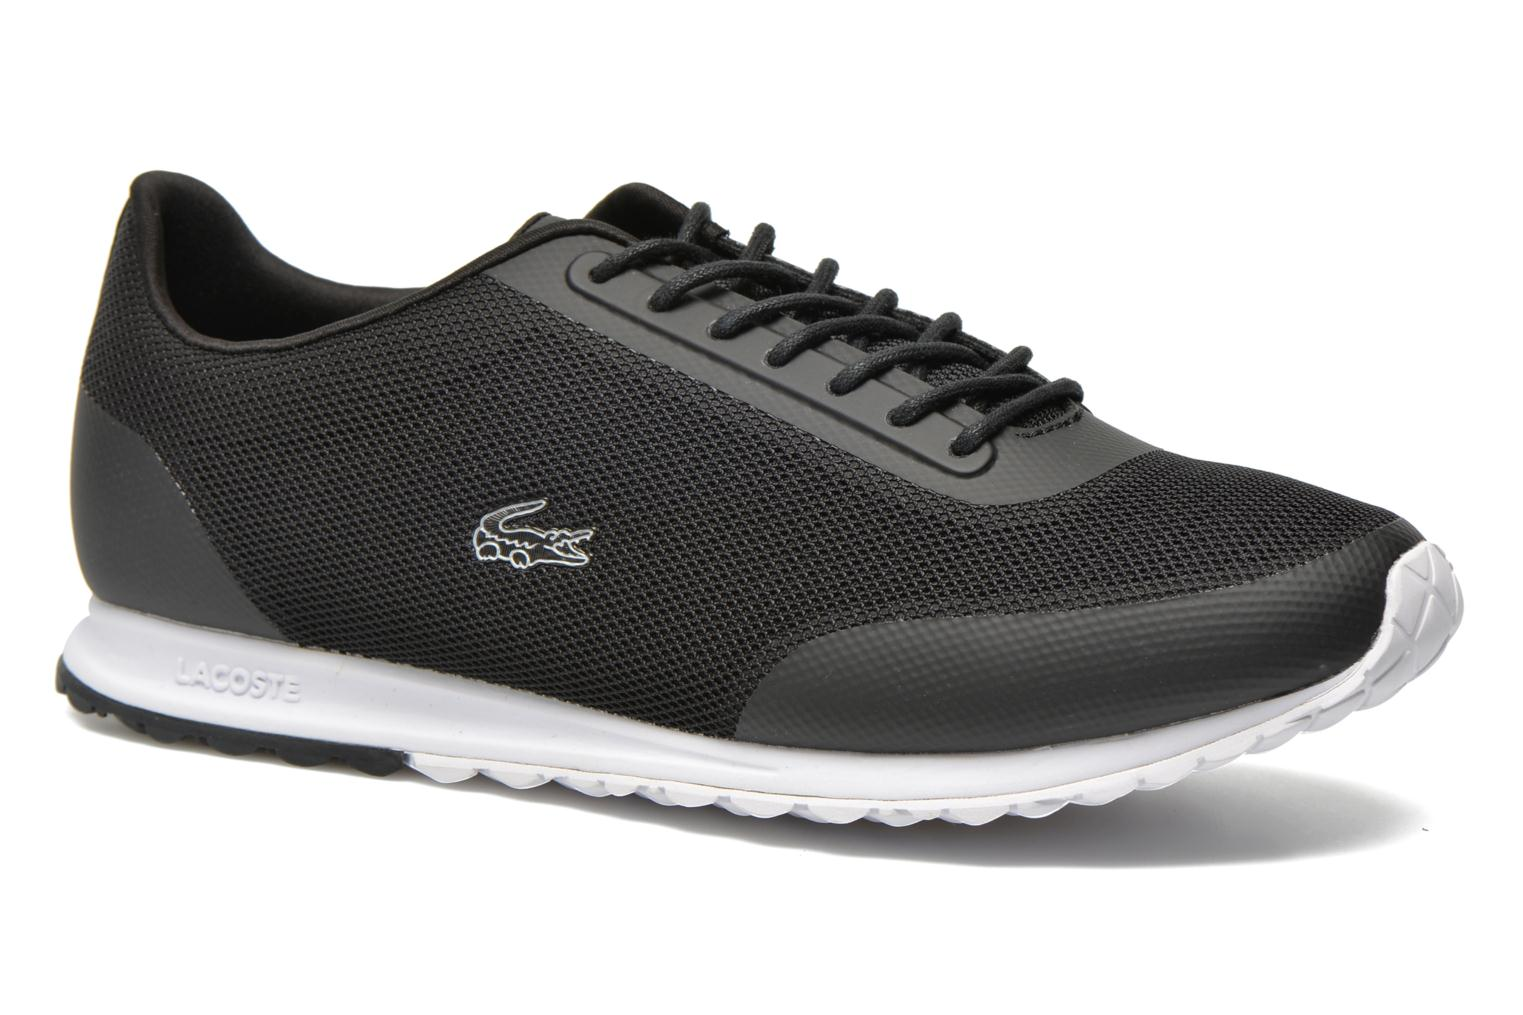 Sneakers Helaine Runner 116 3 by Lacoste